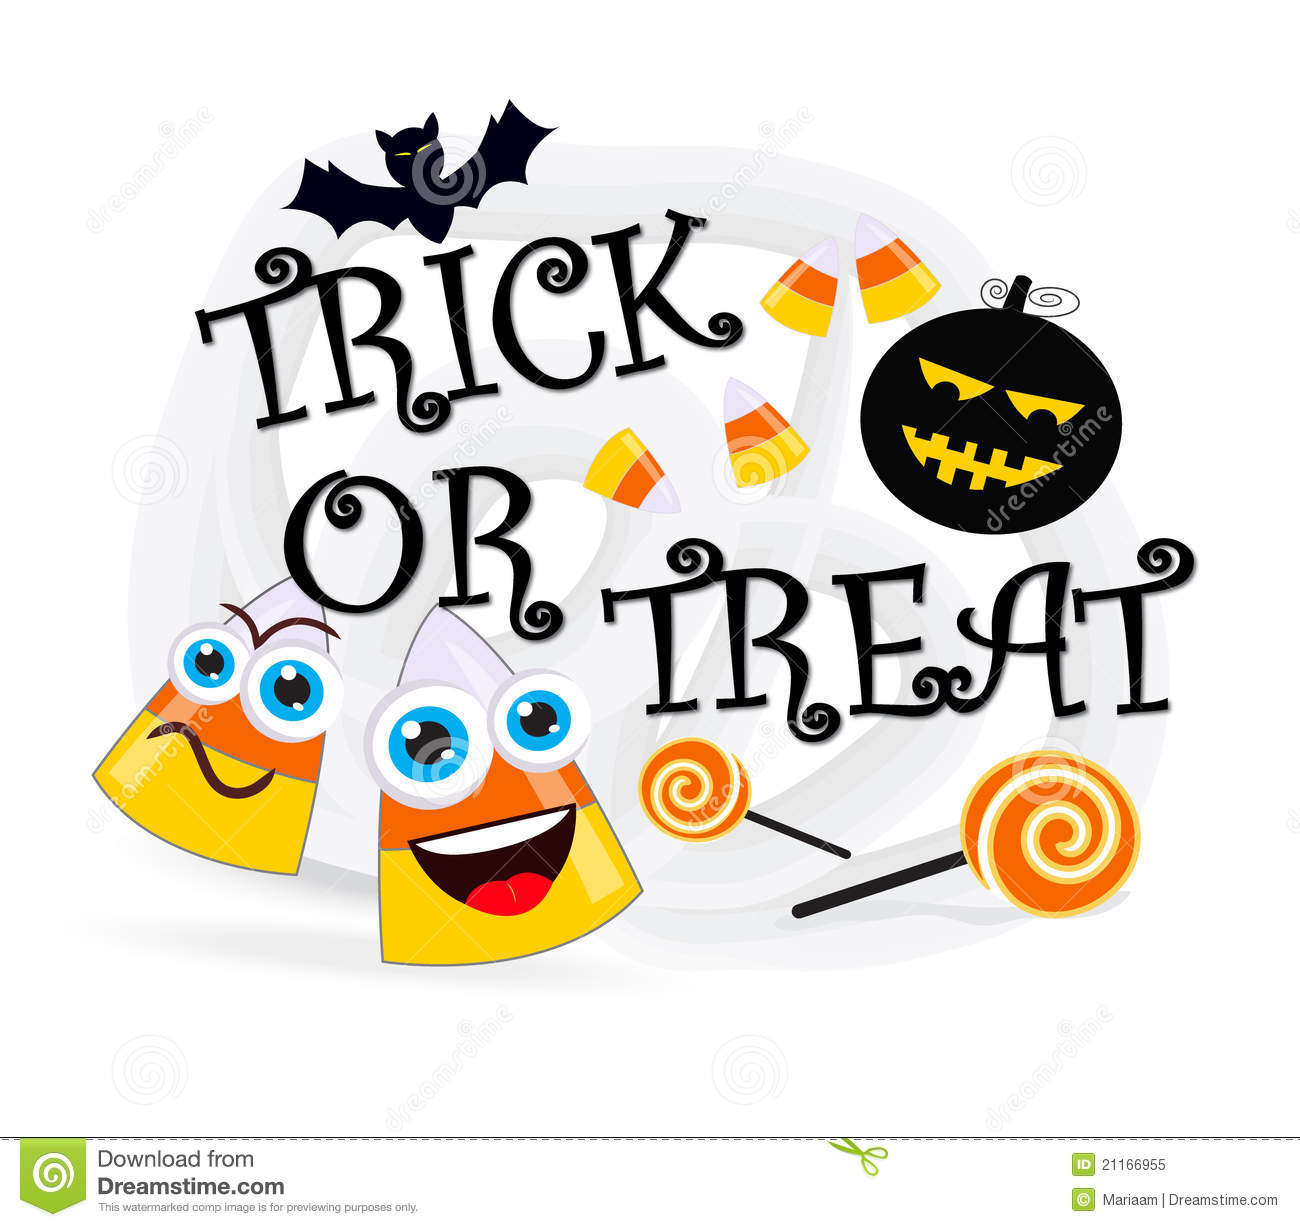 Trick or treat clipart free.